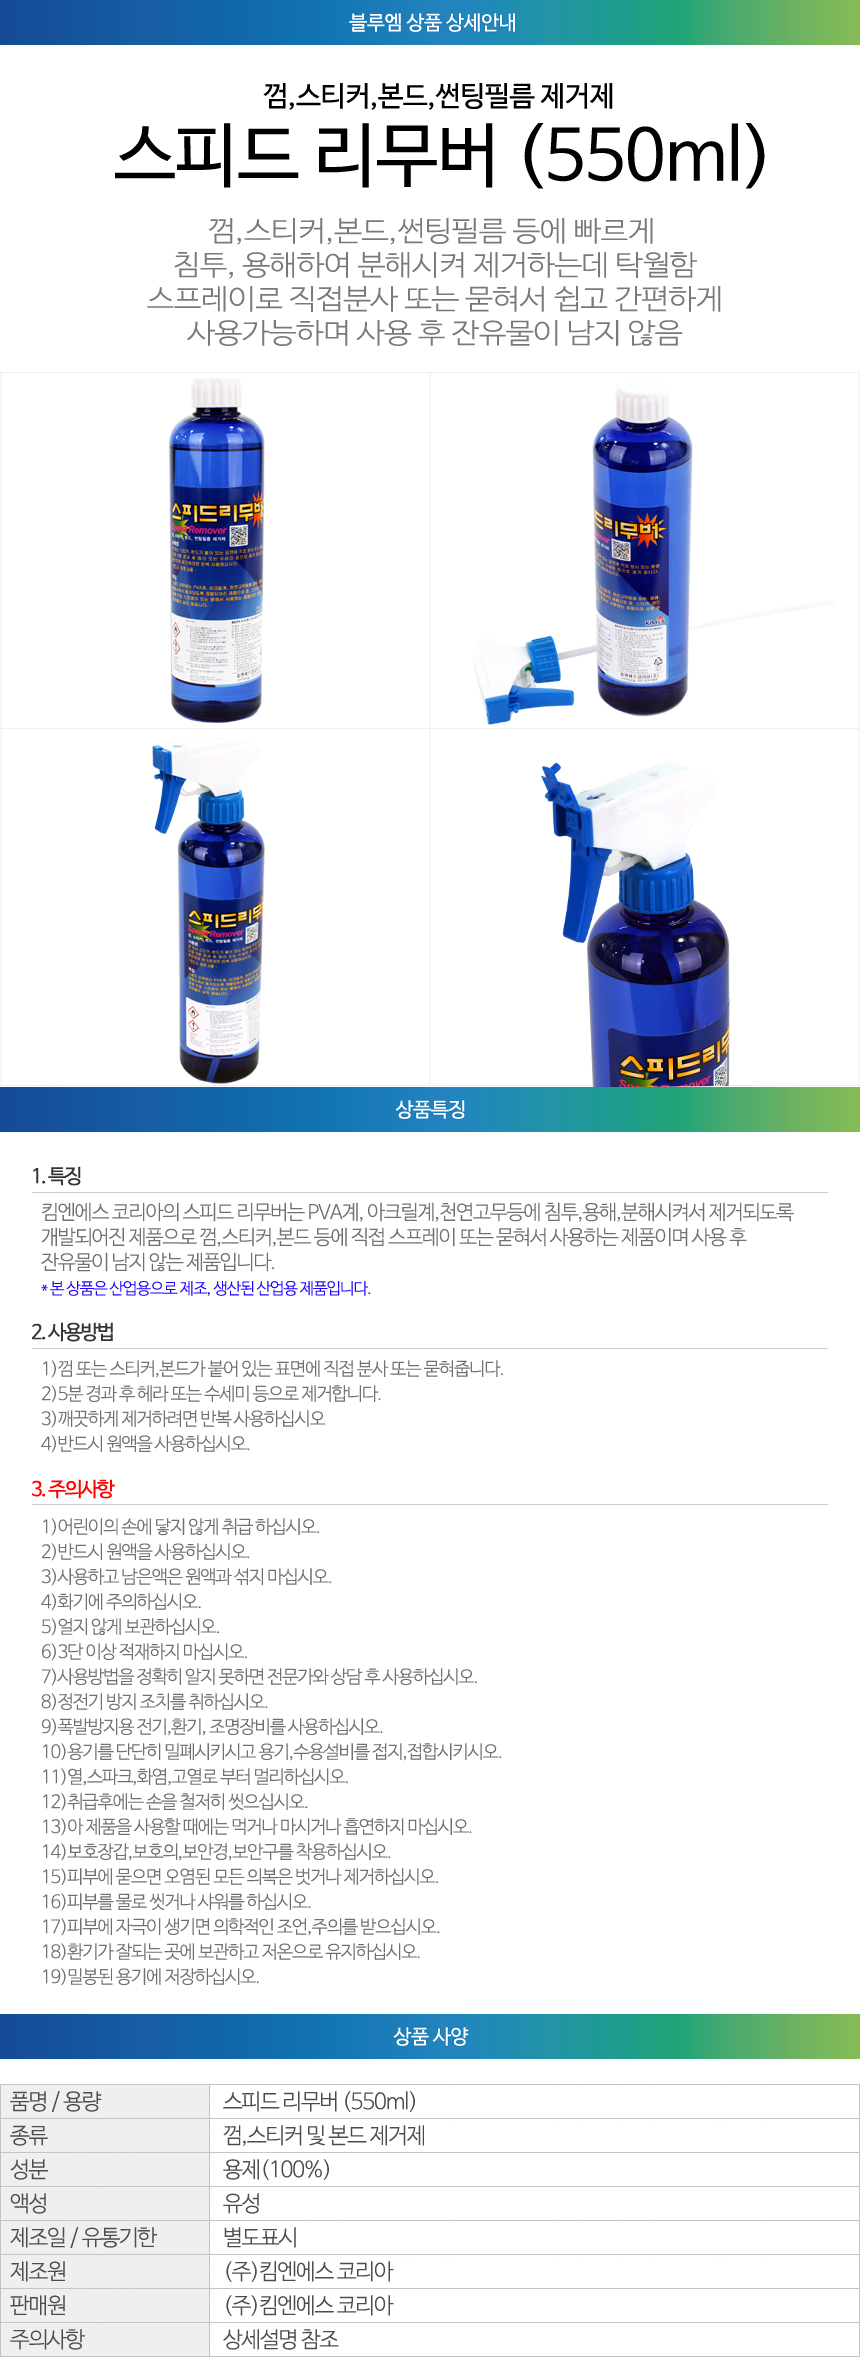 speedremuber_550ml.jpg